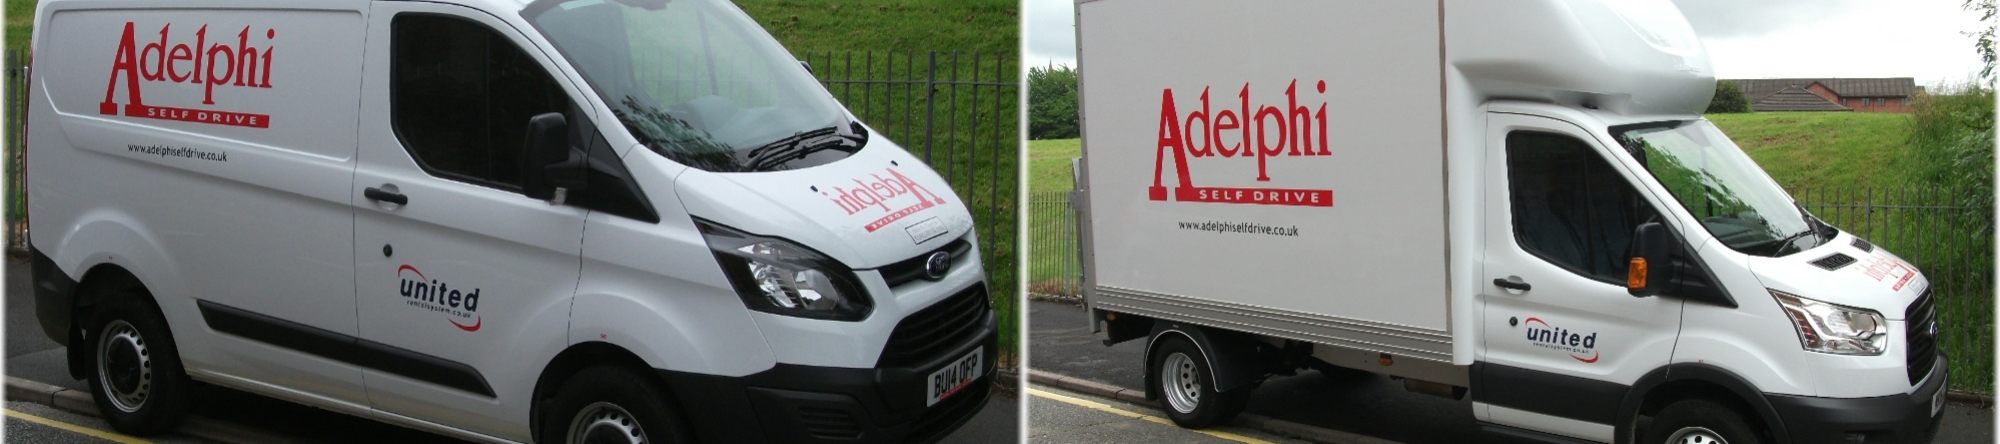 Our van hire